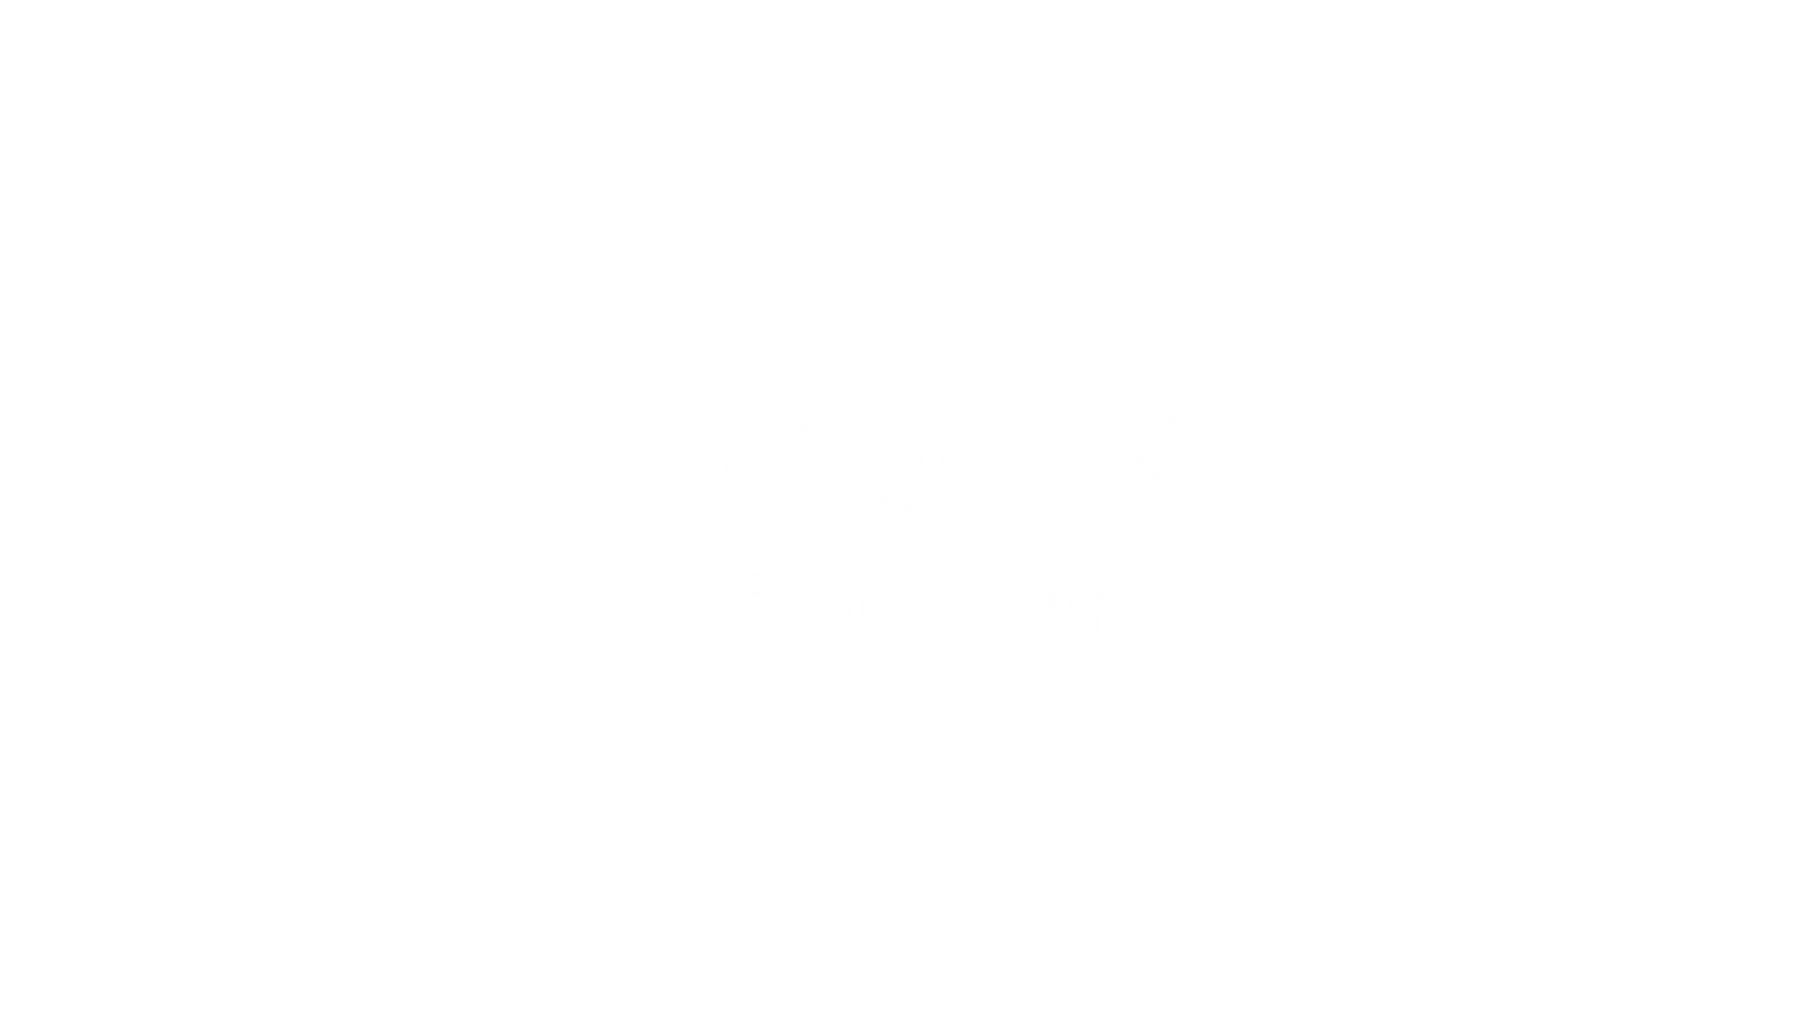 chep-cover-text.png